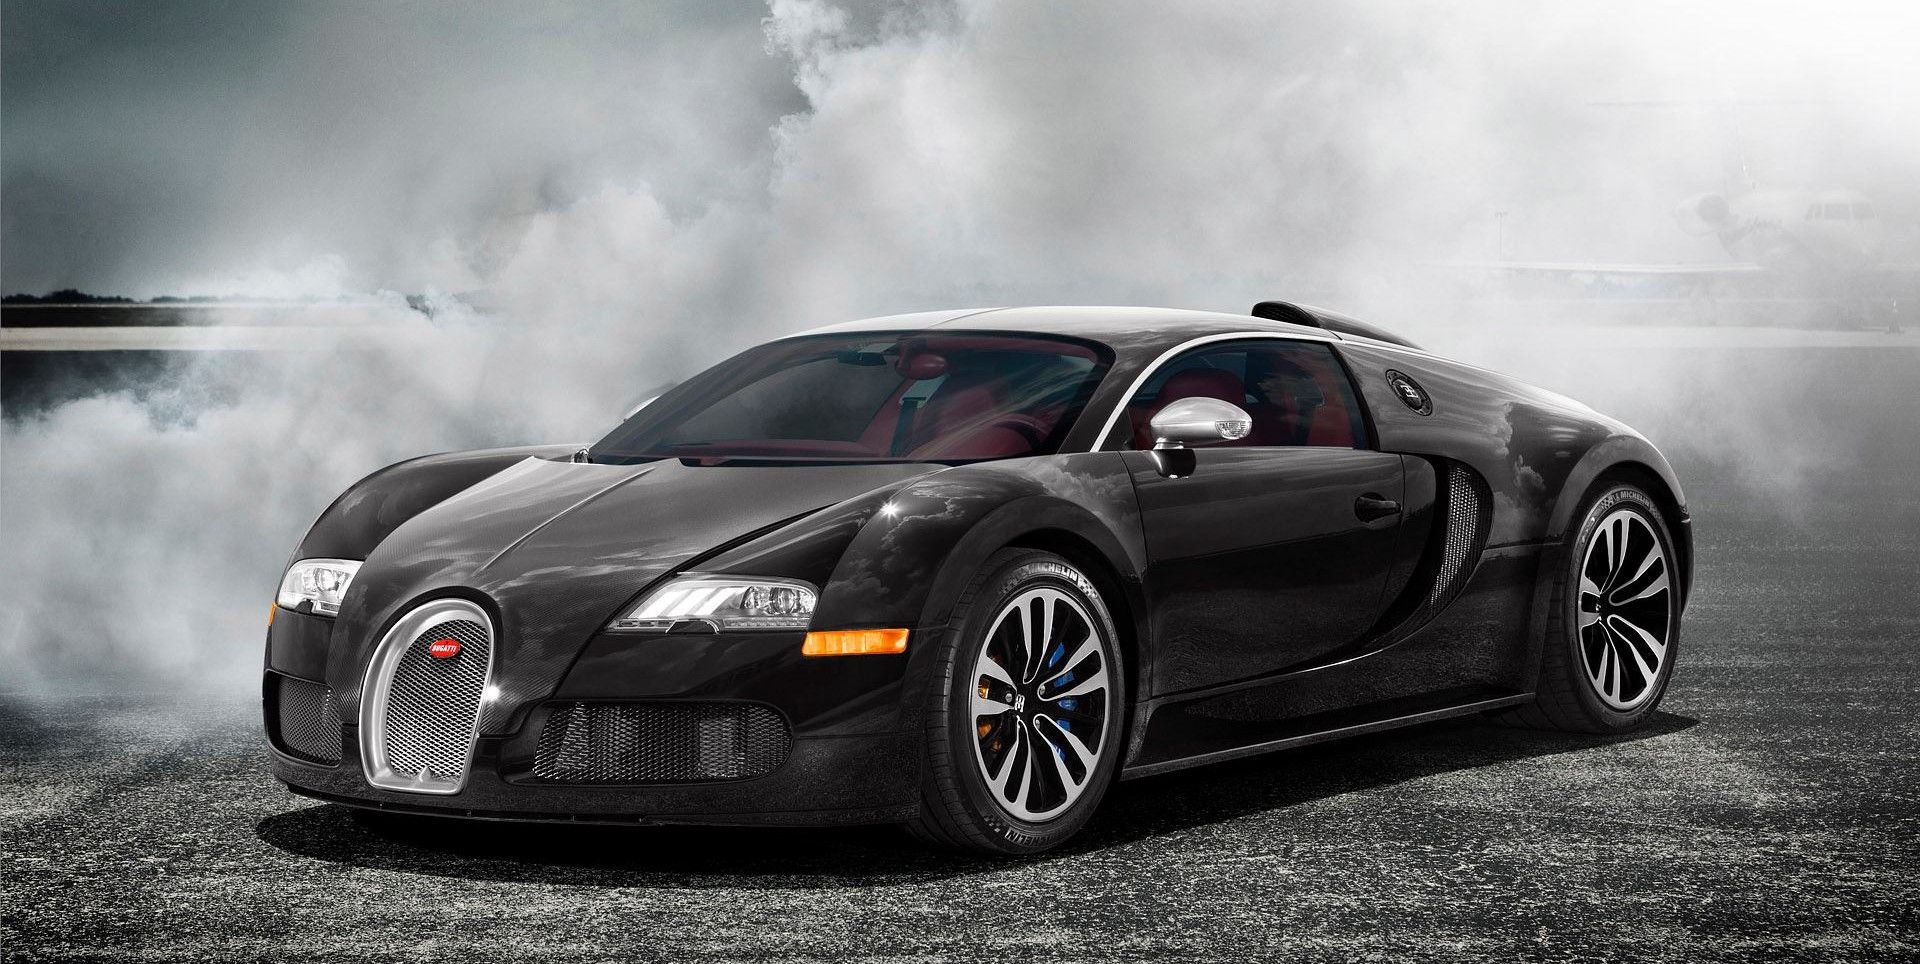 10 Fastest Cars In The World And Their Price-Tags